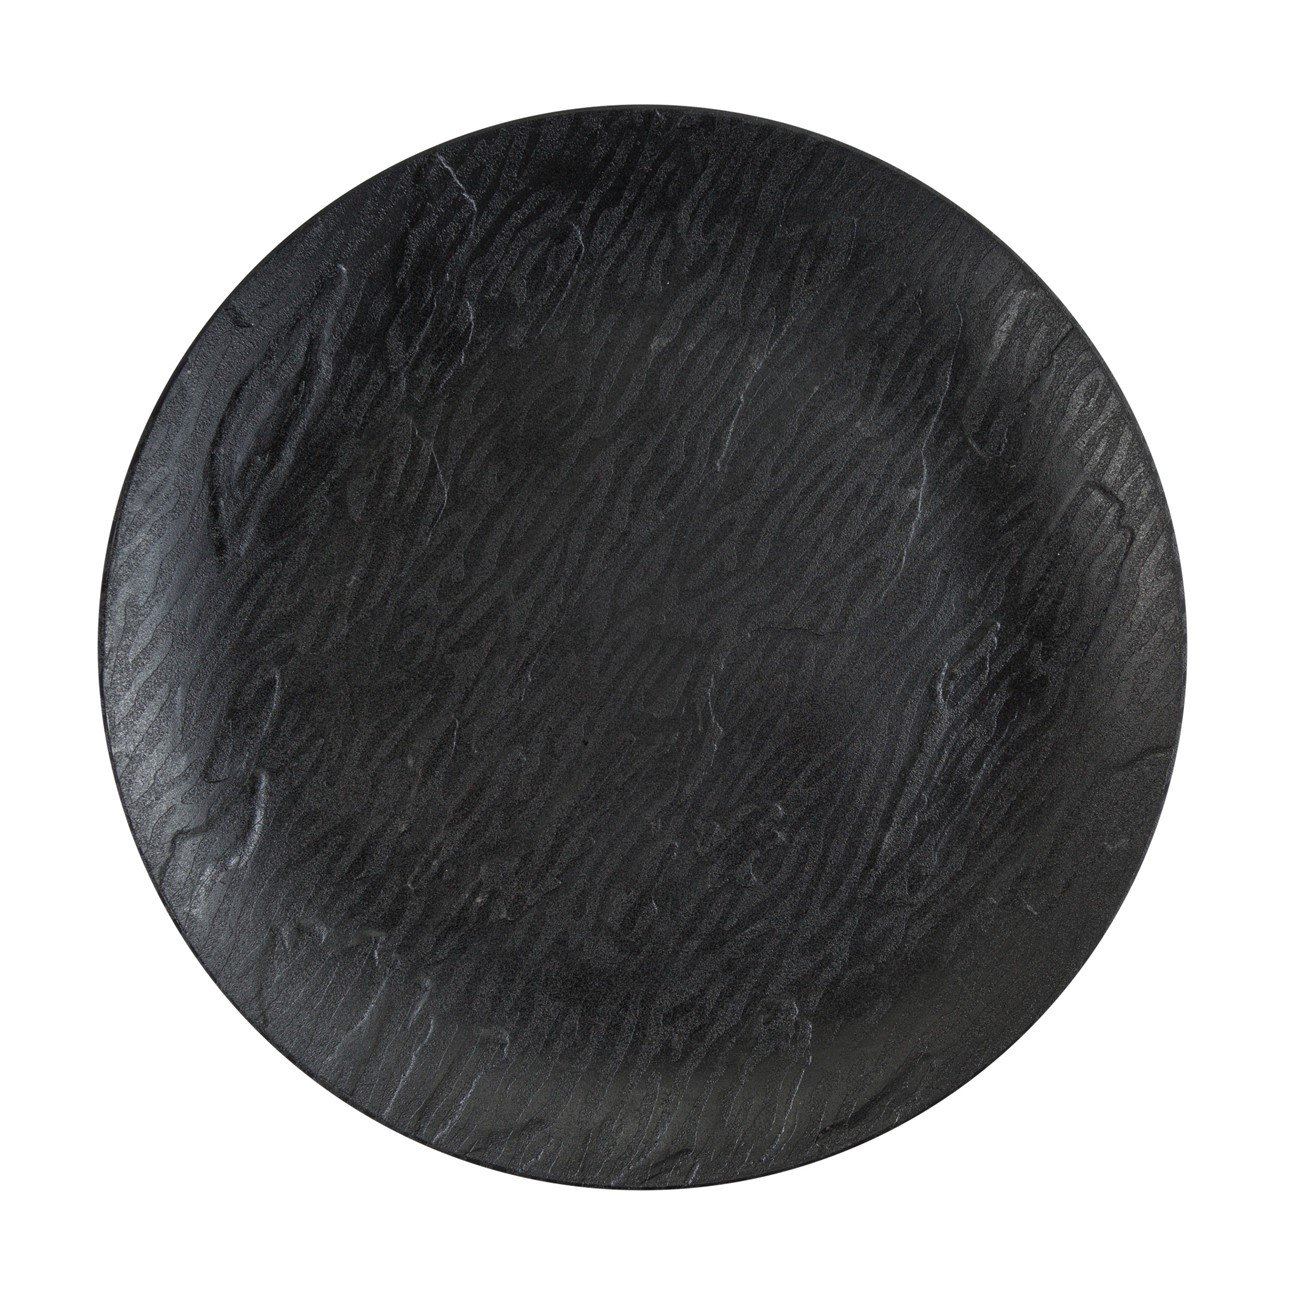 Posh Setting Harmony Collection 40 Pack China Like Wood Pattern, Black Plastic 10'' Dinner Plates Fancy Disposable Dinnerware